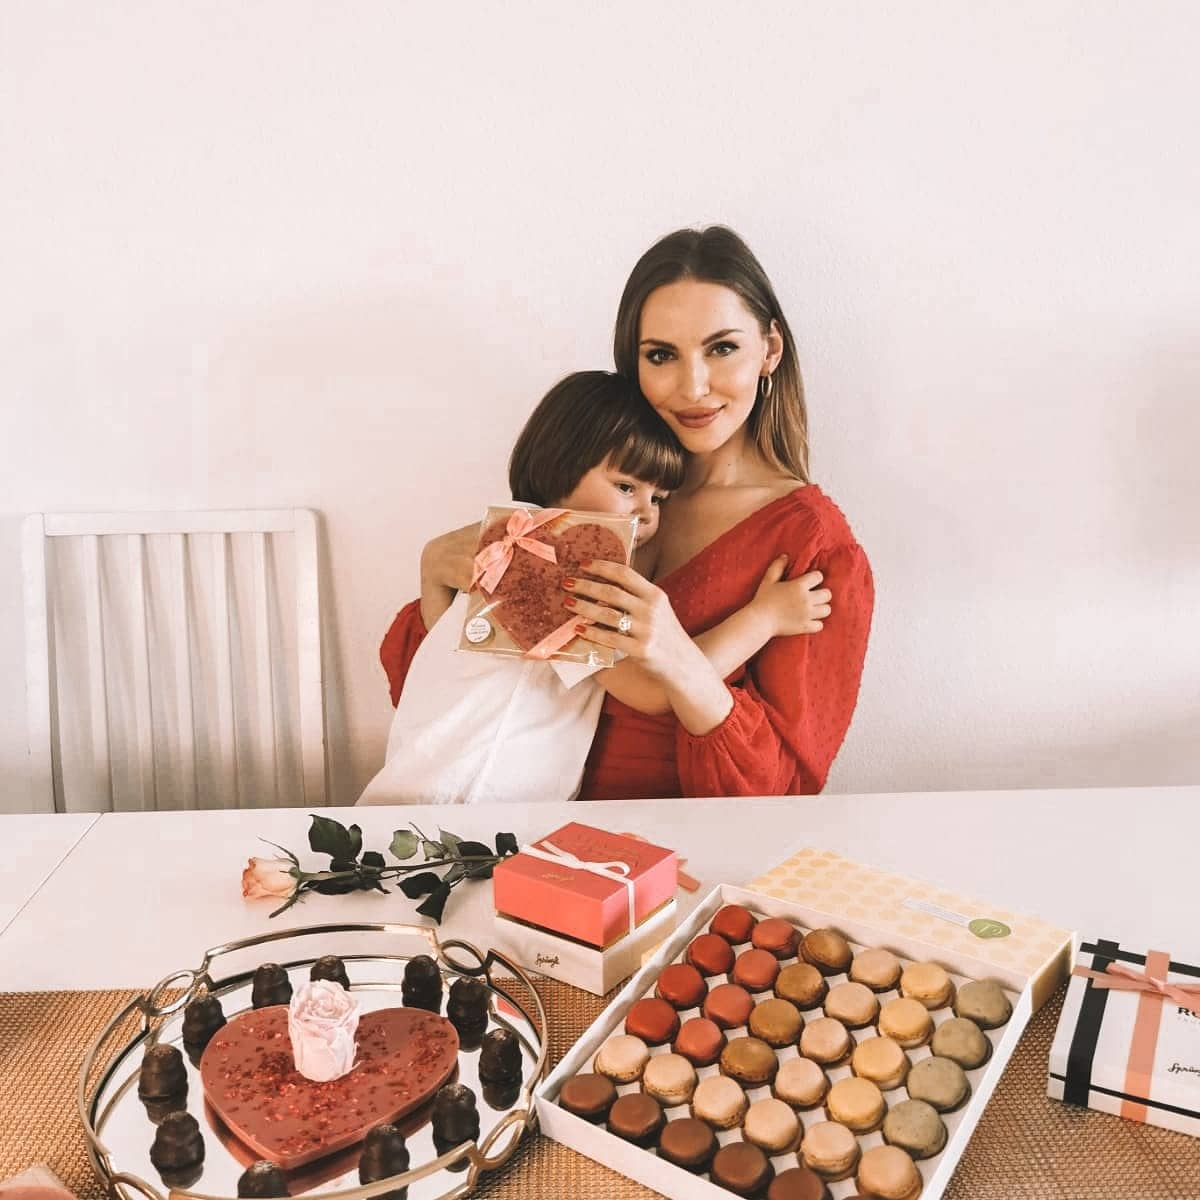 Confiserie Sprüngli chocolates for Mother's Day. Swiss Chocolate and macaroons. Izabela Switon-Kulinska with a son.